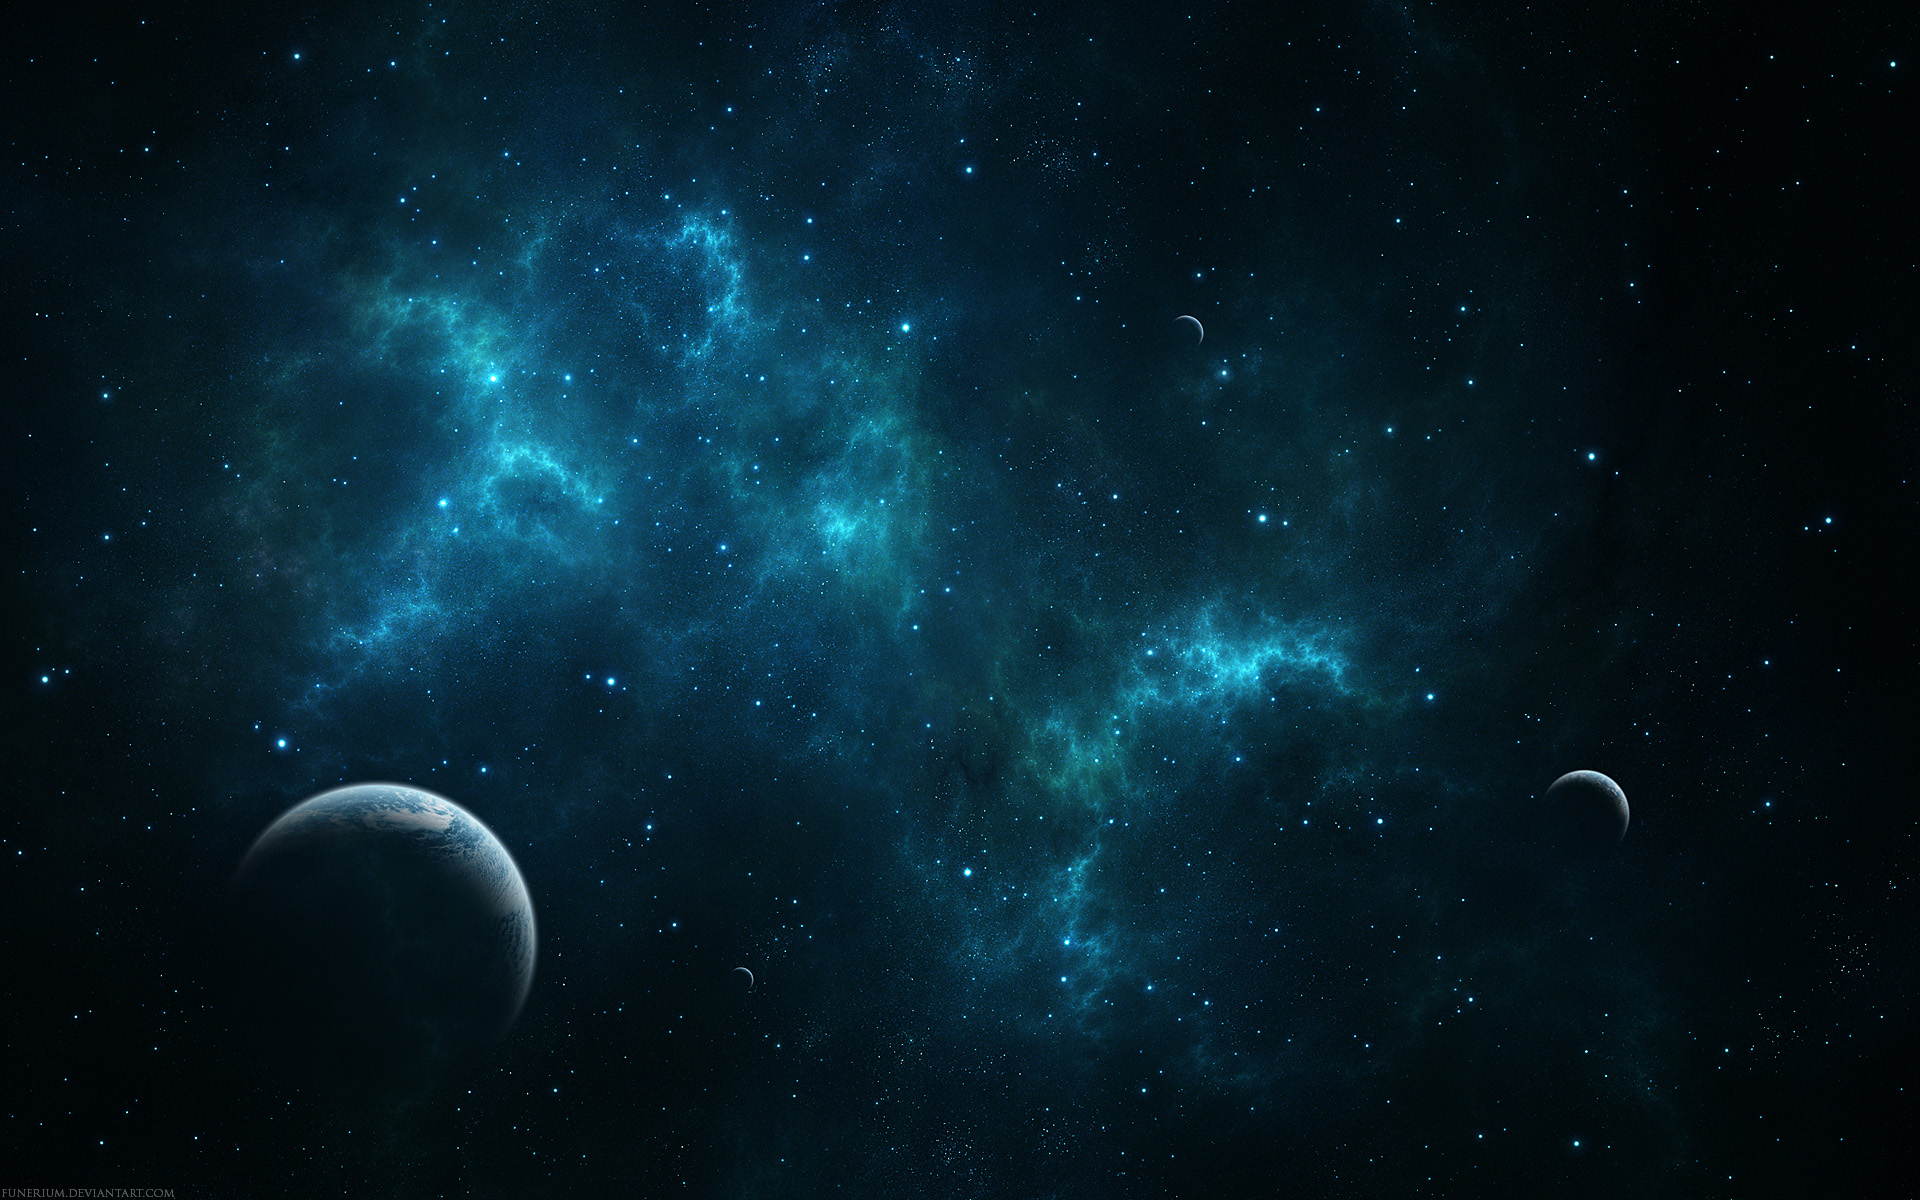 Hd Space Images High Definition 57 Free Wallpaper